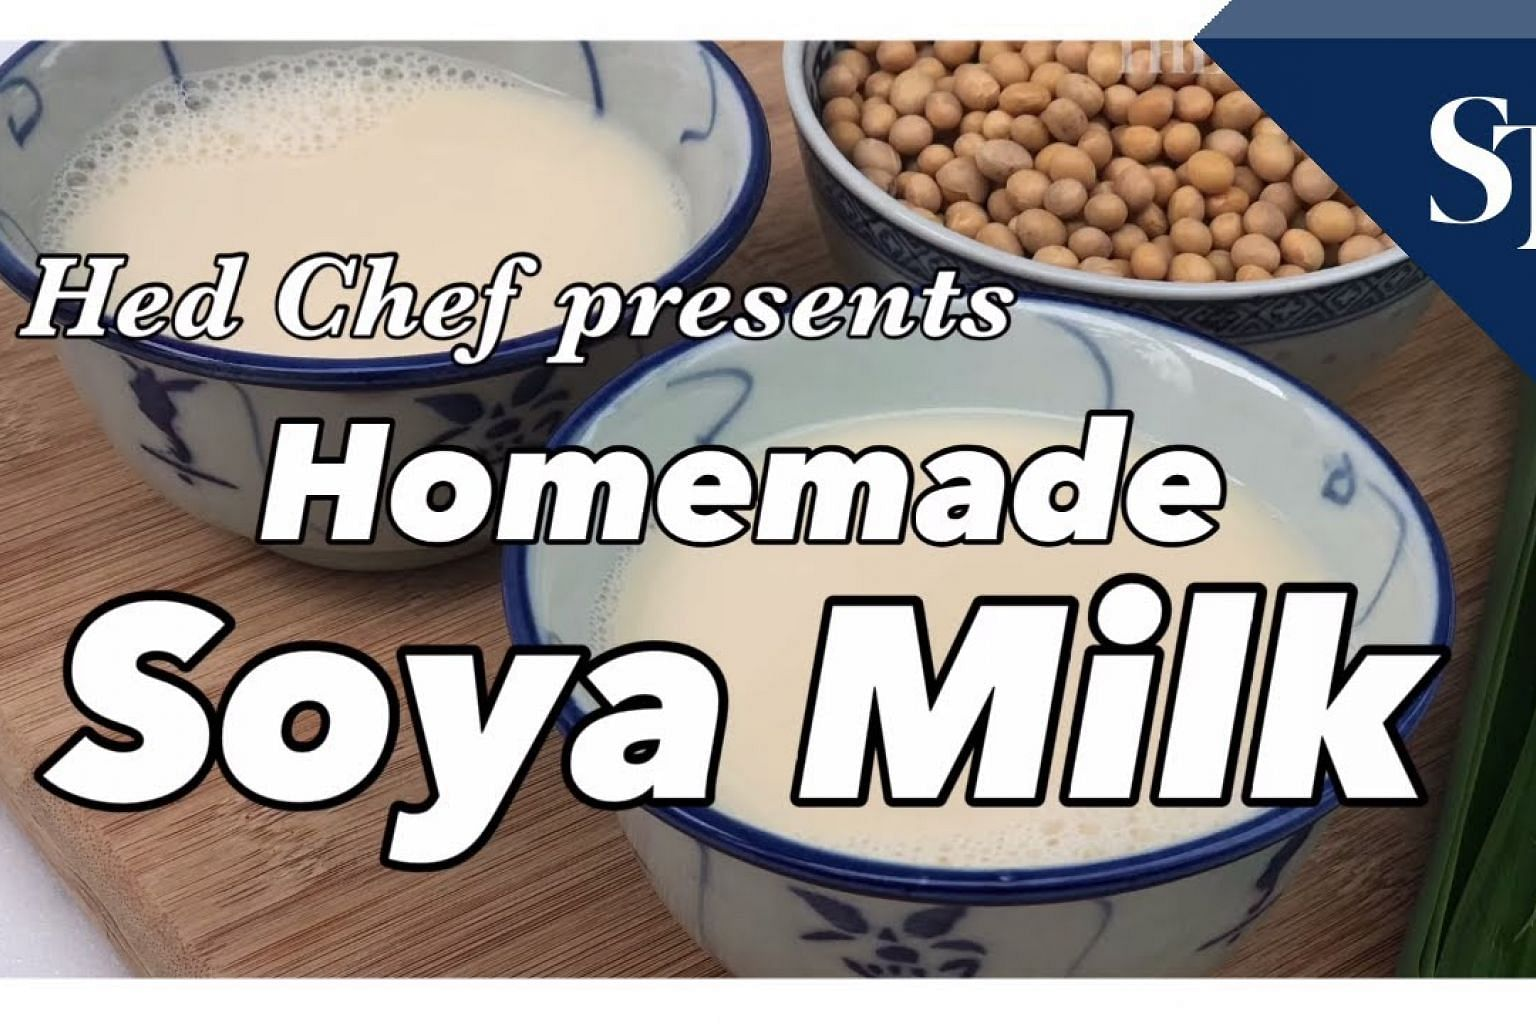 Homemade Soya Milk recipe | Hed Chef | The Straits Times